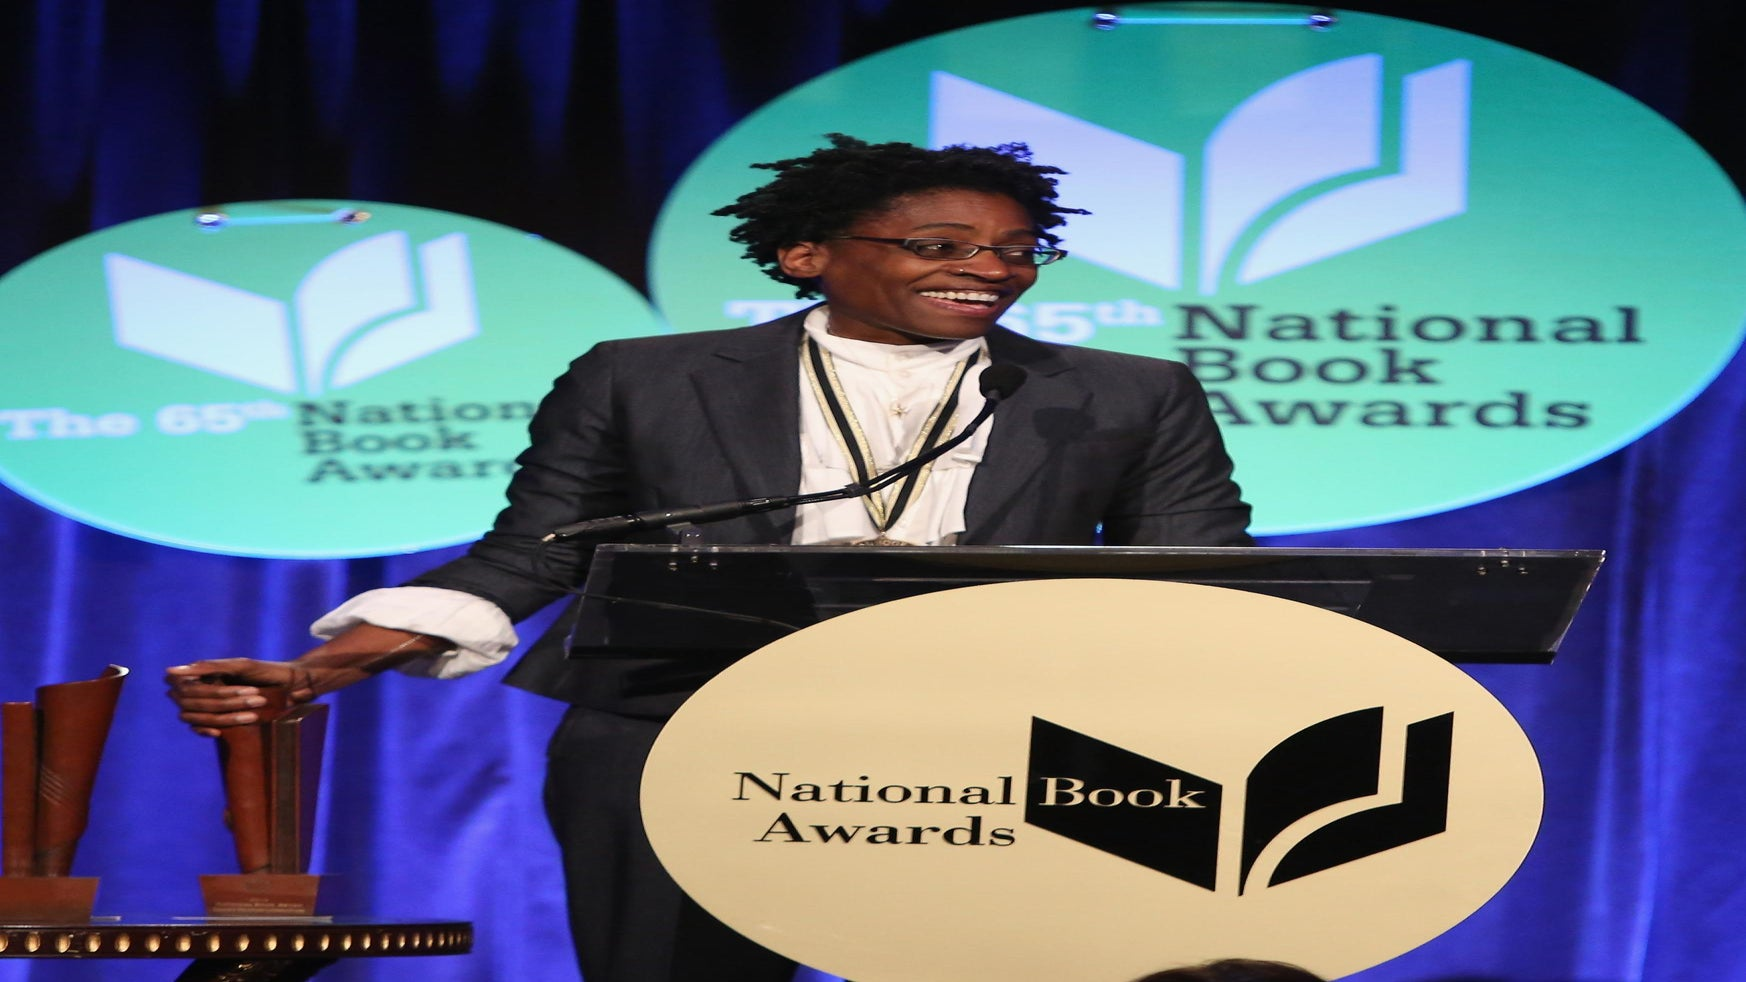 Children's Book Author Jacqueline Woodson Wins National Book Award